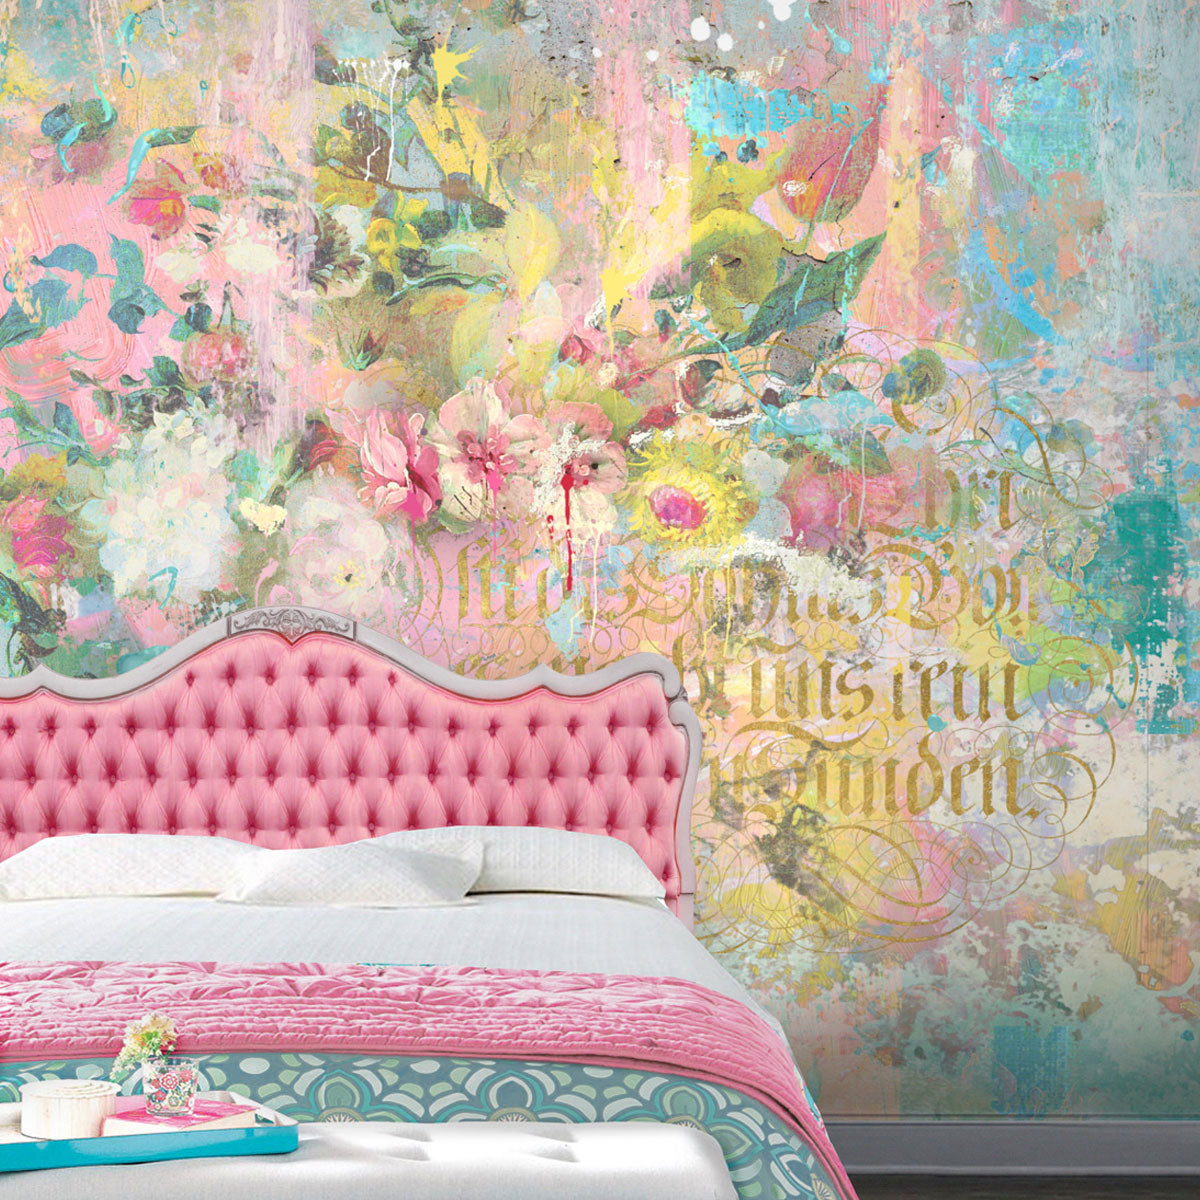 Paint & Gilt Wall Mural for a Teen Bedroom by Back to the Wall